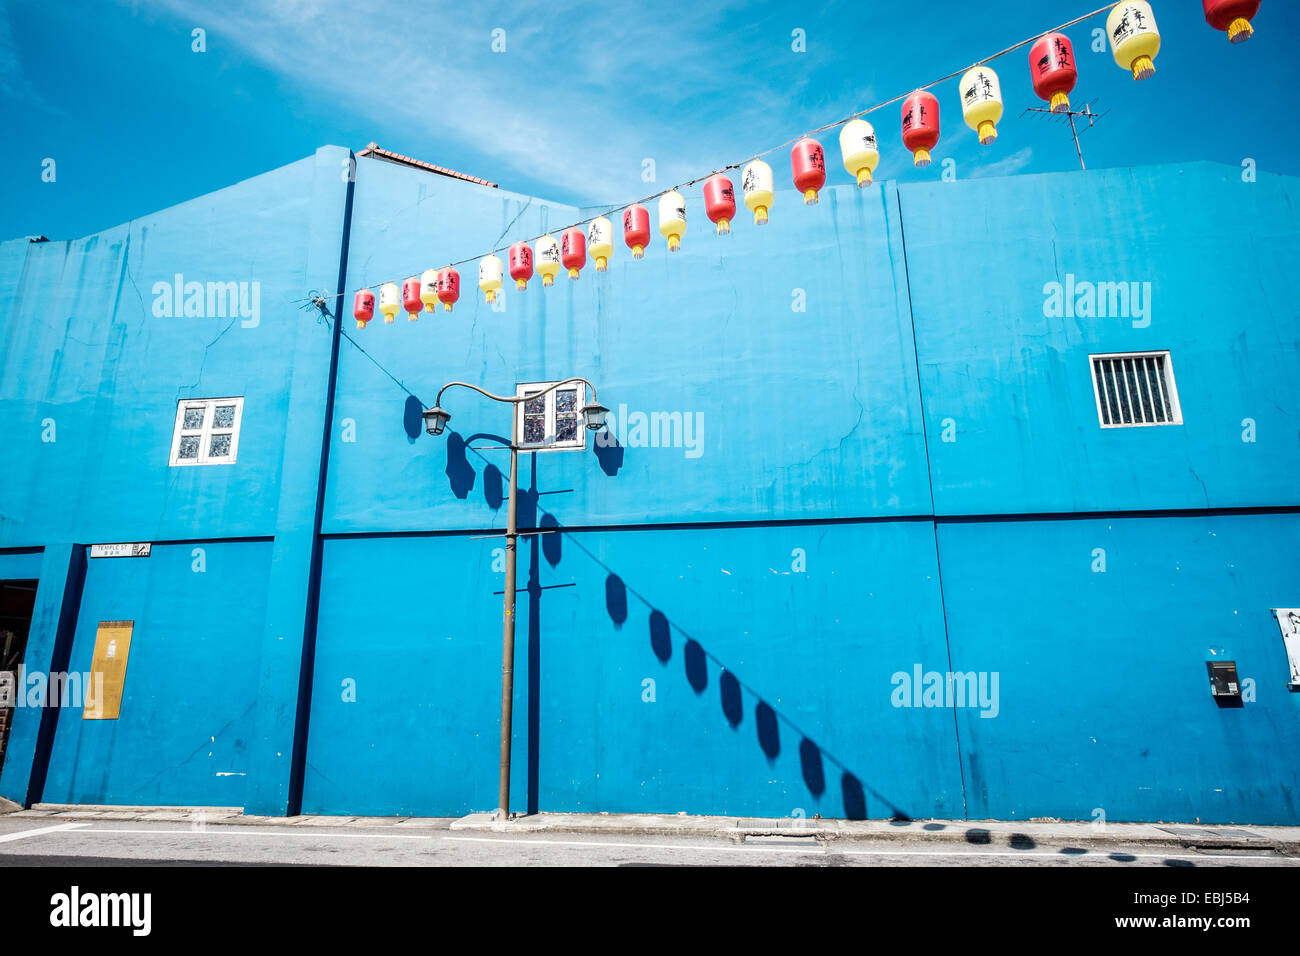 Blue building in chinatown in singapore - Stock Image